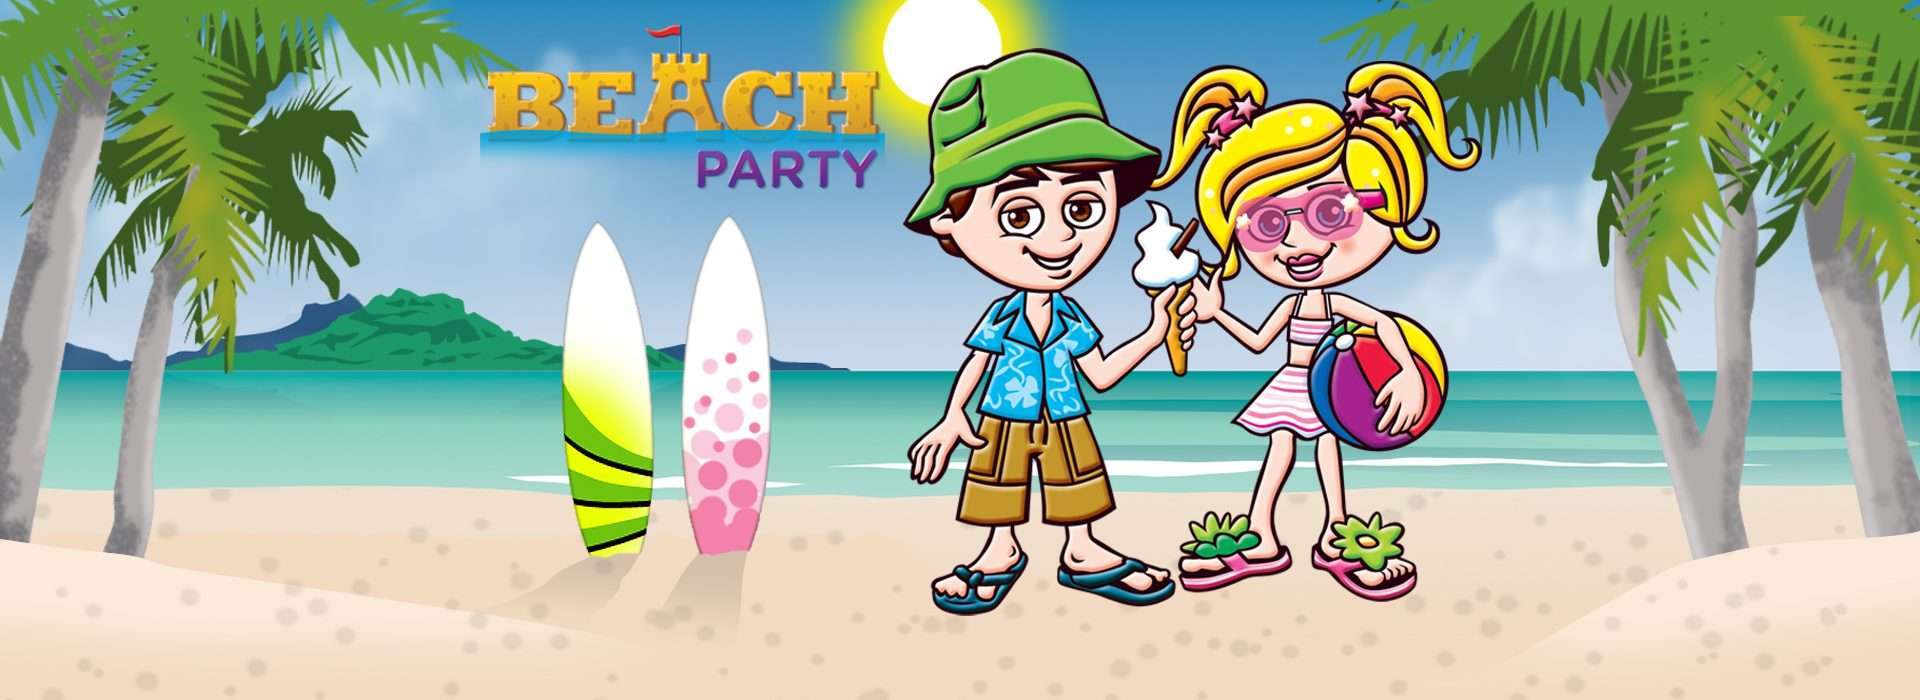 Kids Beach Party - A Fun-Filled Party for Kids Aged 4-11